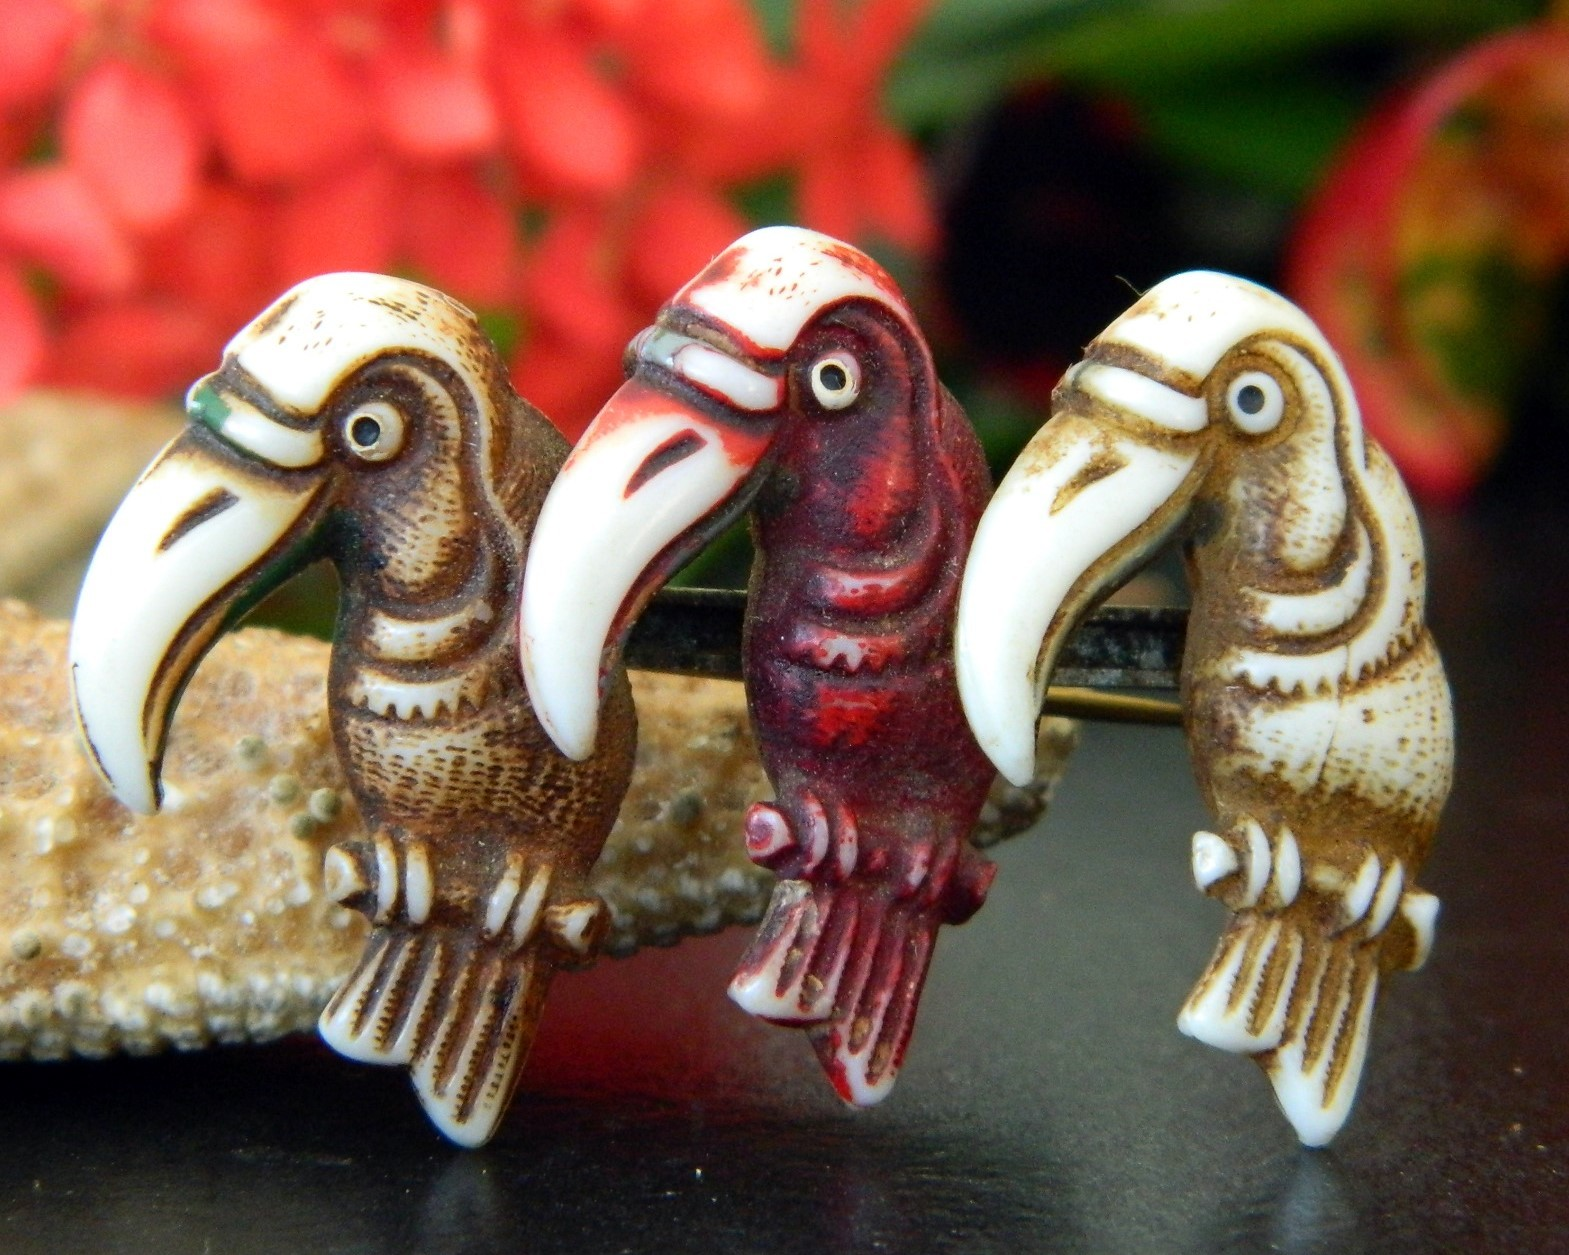 Vintage toucans birds trio pin brooch early plastic celluloid figural